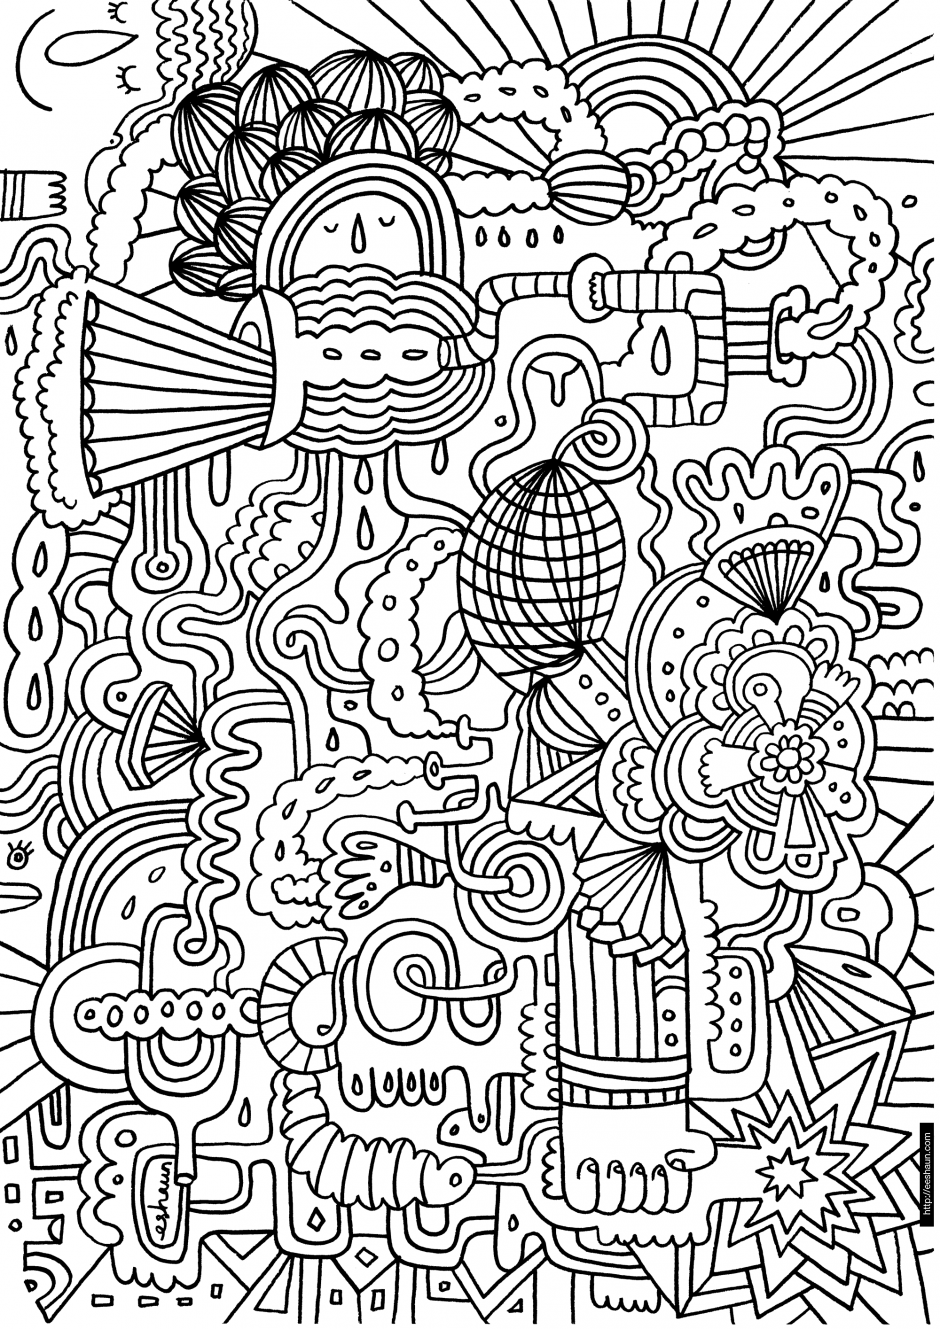 coloring worksheets hard coloring pages difficult but fun coloring pages free and hard worksheets coloring